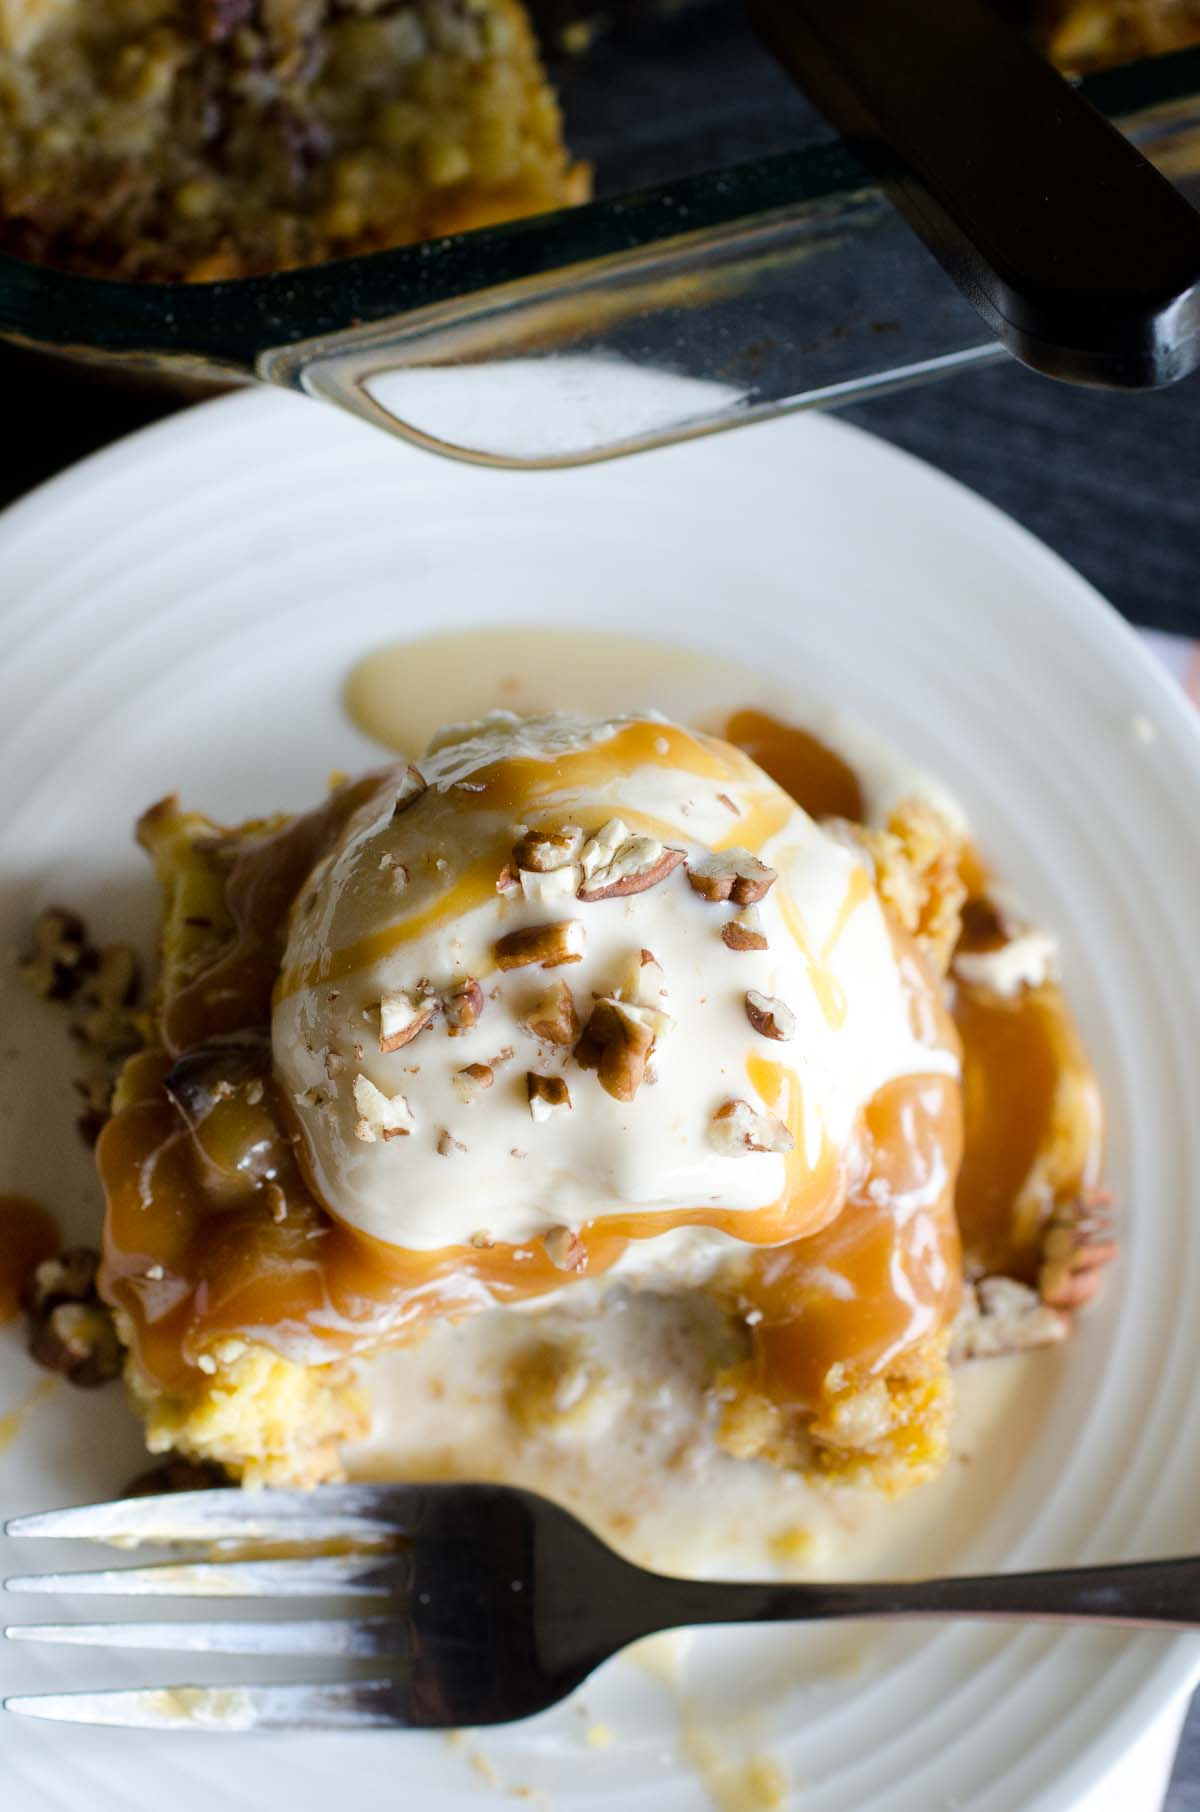 over shot of cake with ice cream, caramel and pecans on a plate with fork